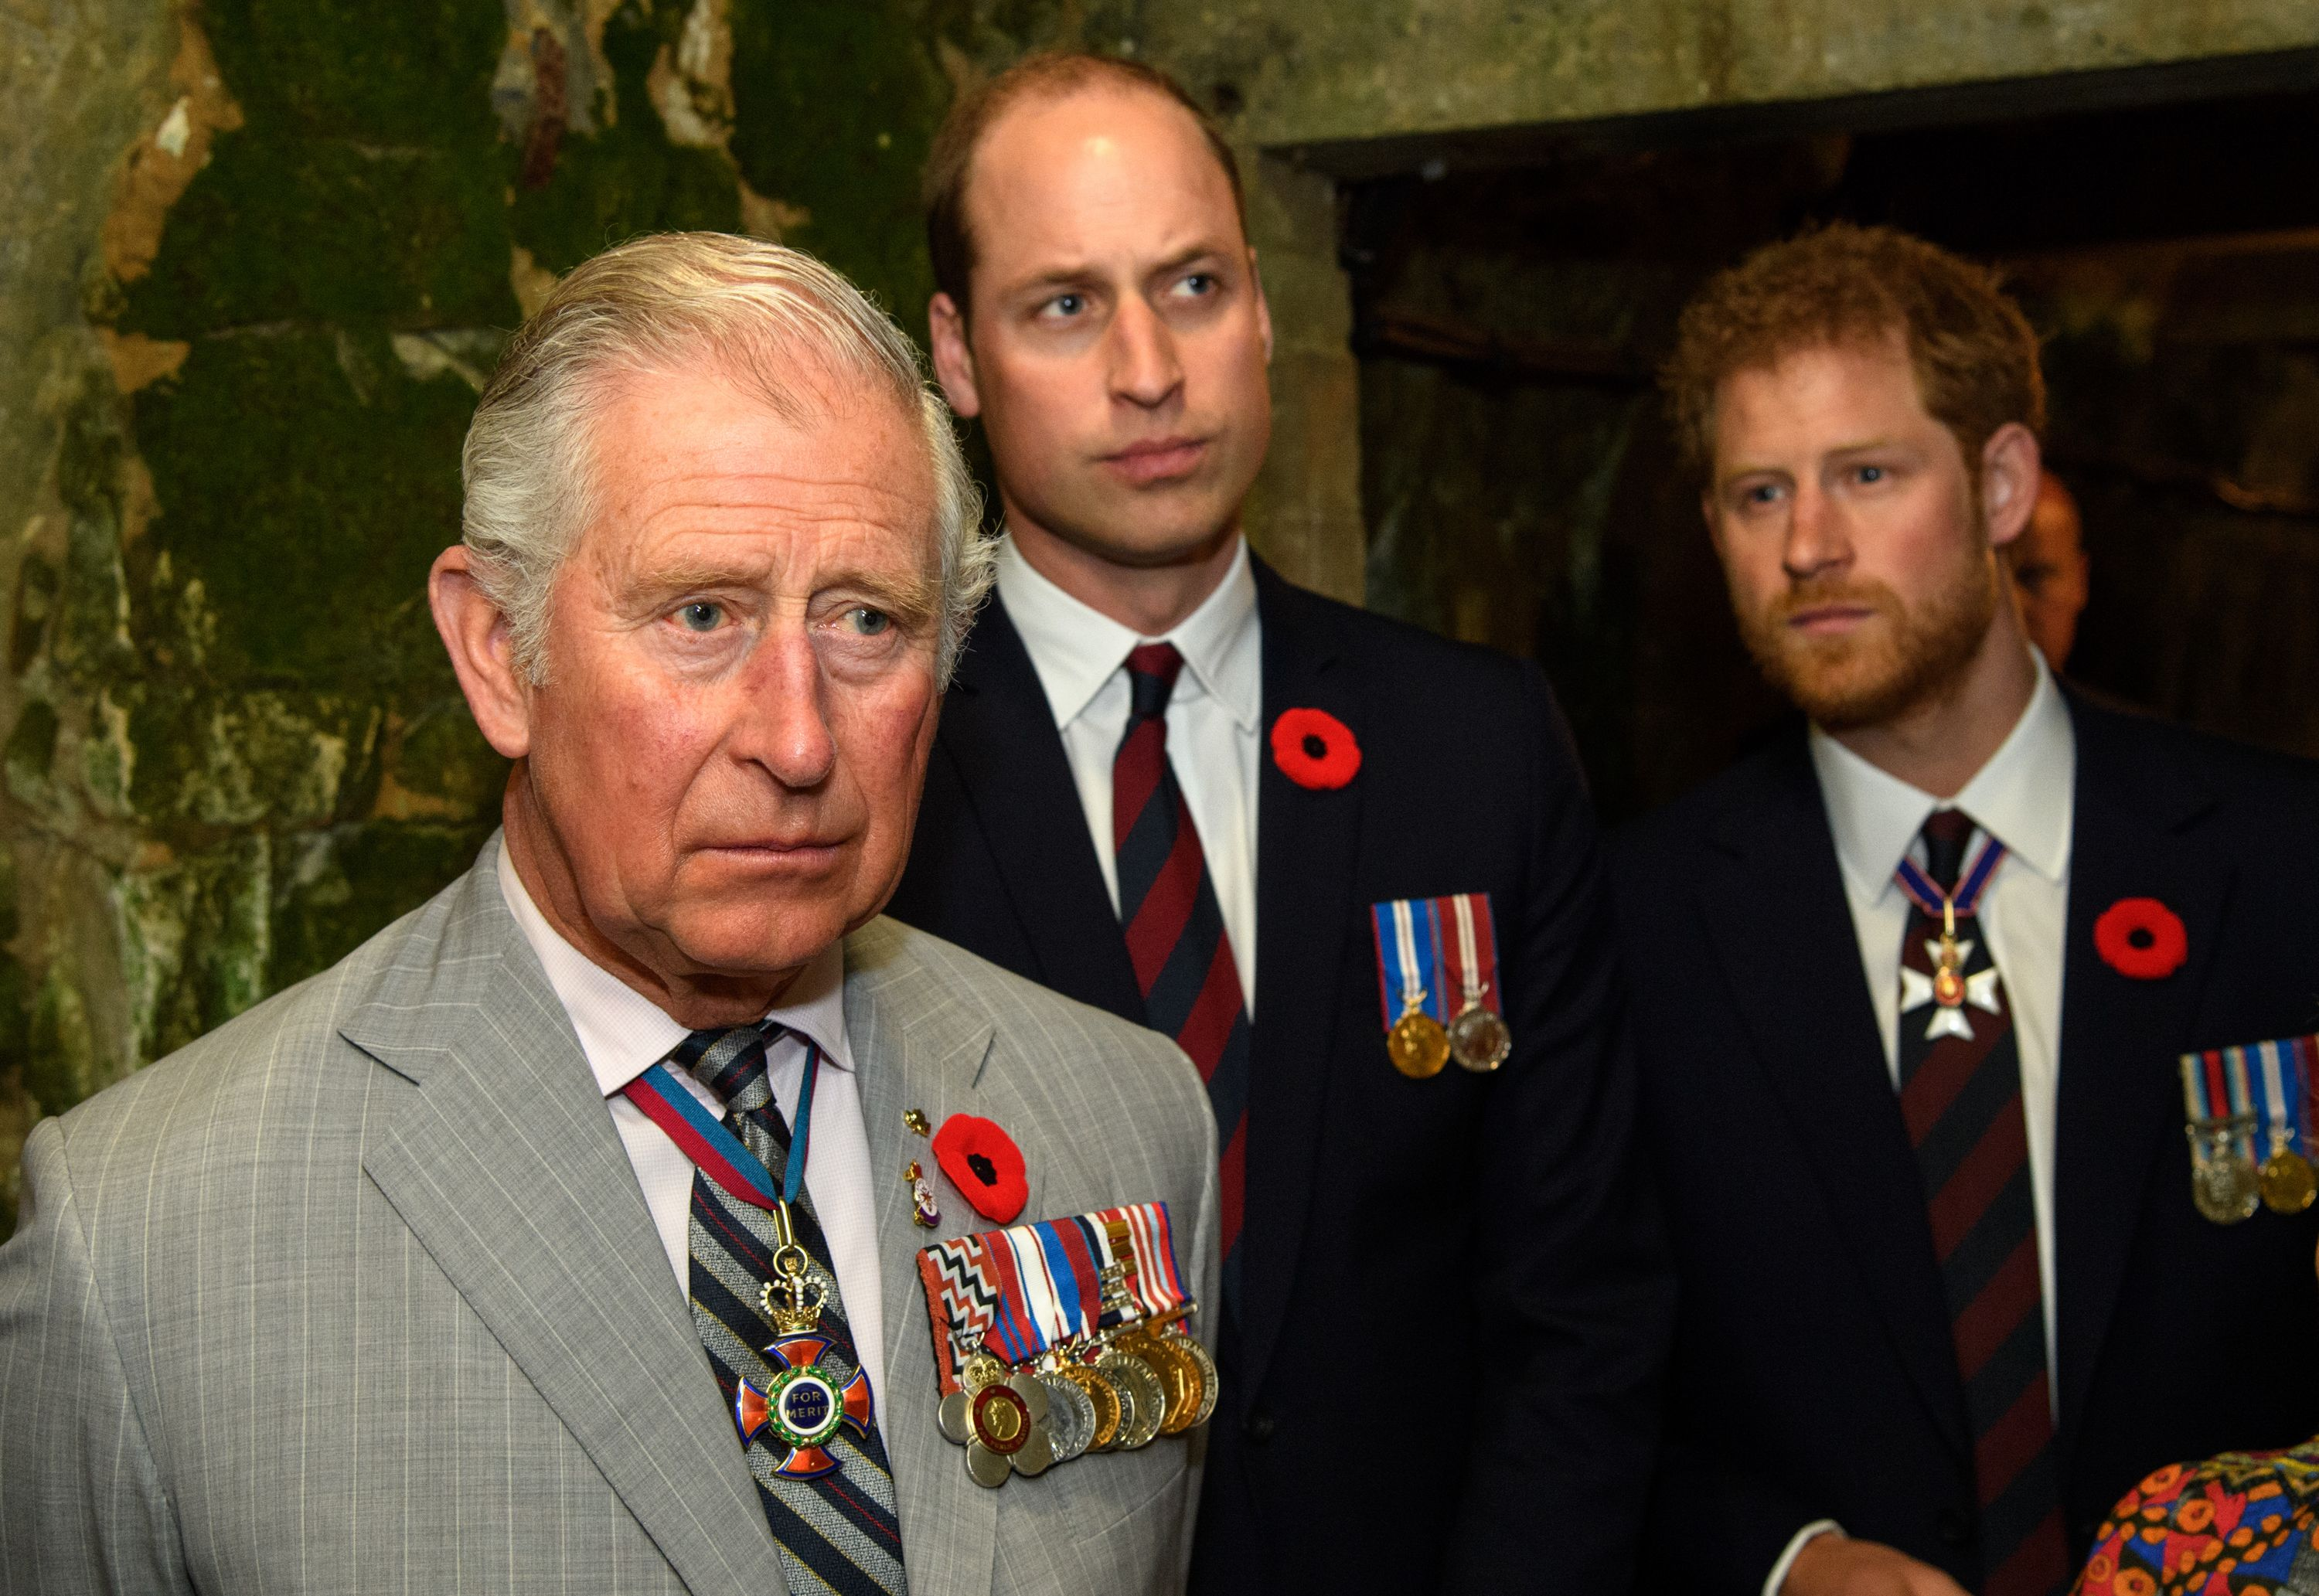 Charles, Prince of Wales, Prince William, and Prince Harry at the 100th anniversary of the battle of Vimy Ridge in 2017 in Lille, France | Source: Getty Images